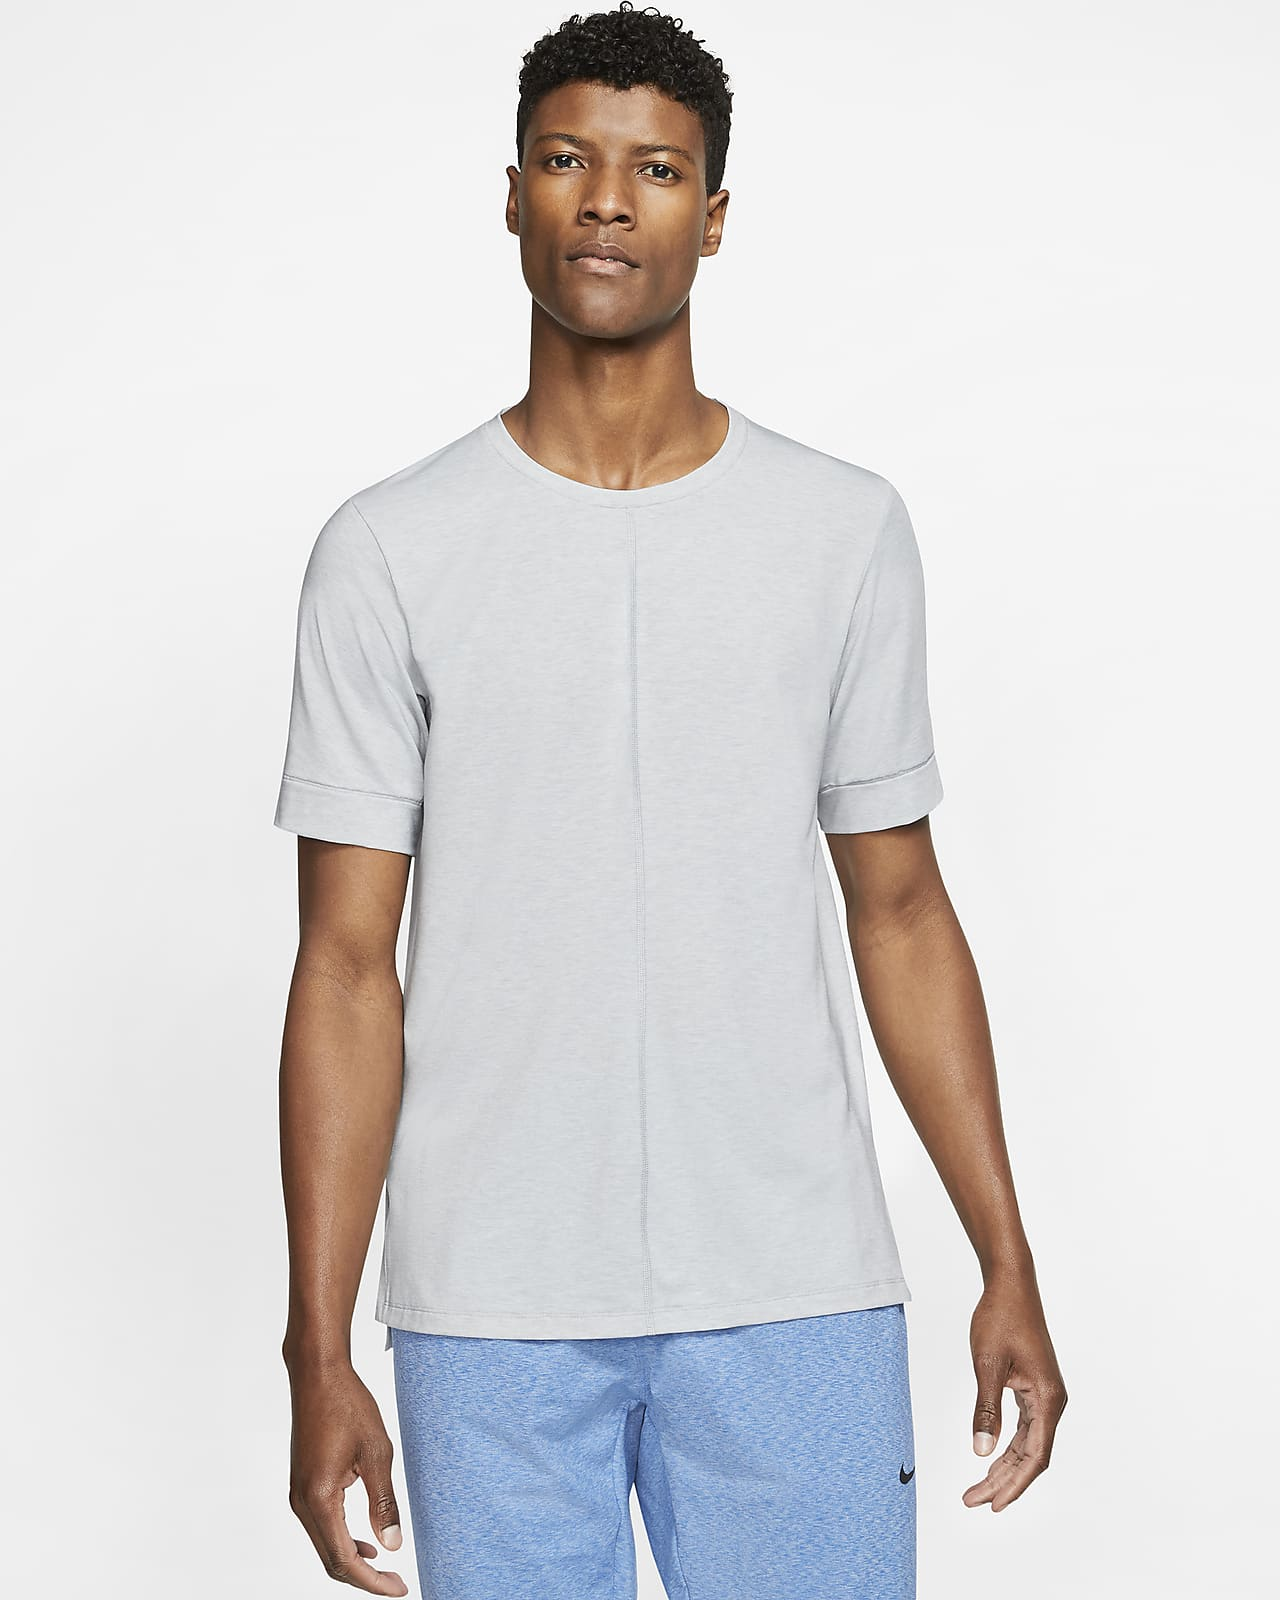 Nike Yoga Dri-FIT Men's Short-Sleeve Top